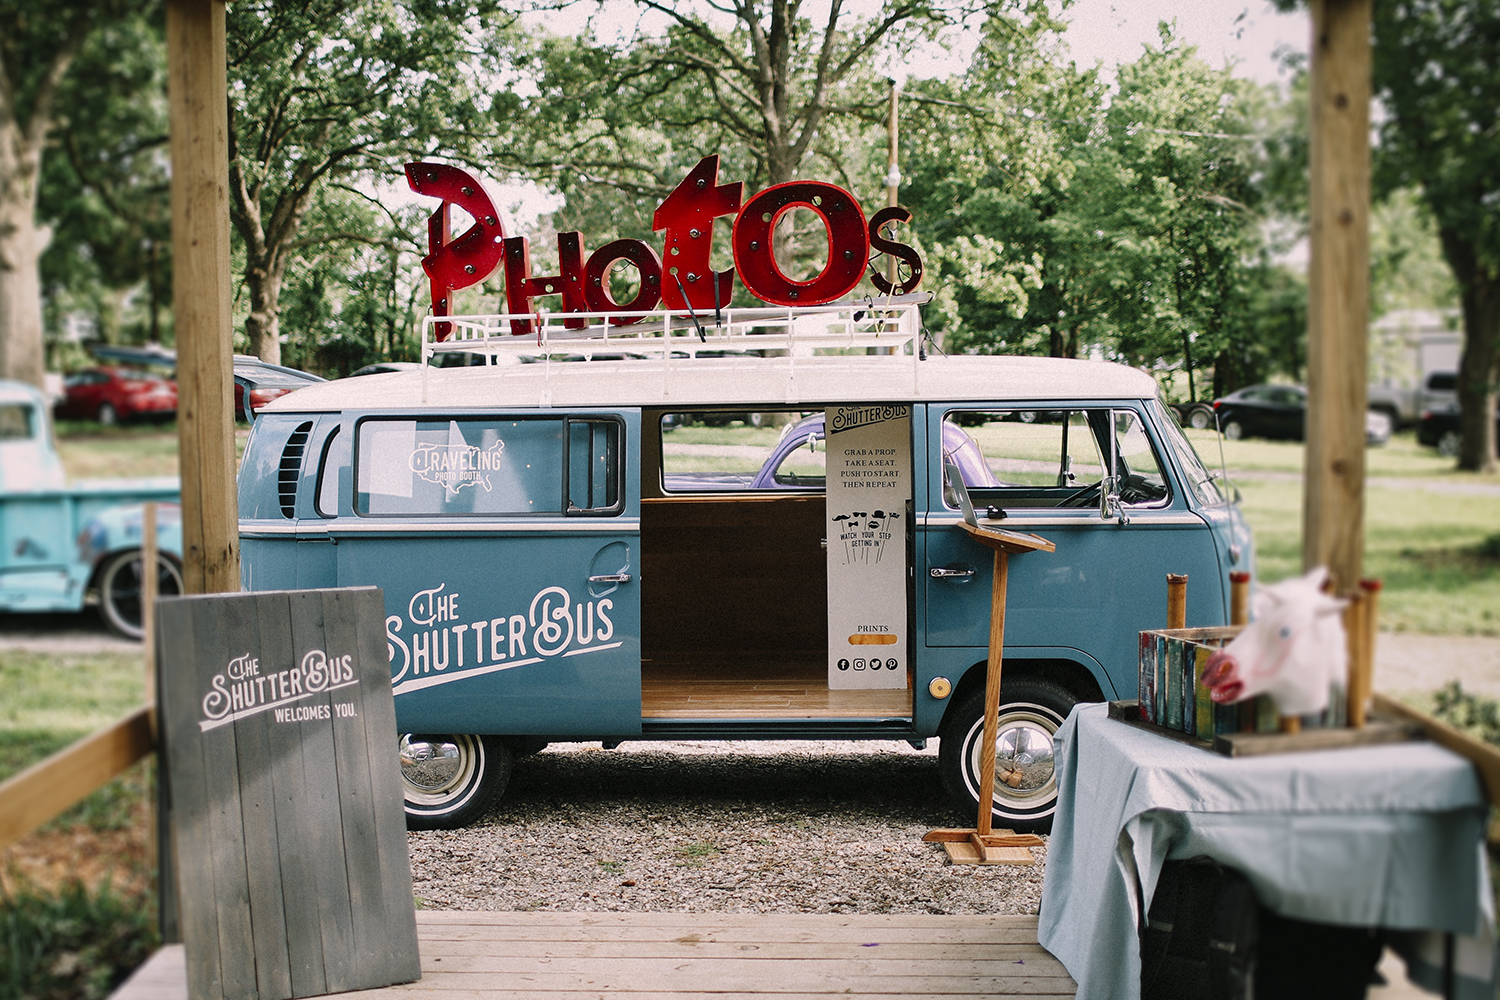 shutter bus photo booth